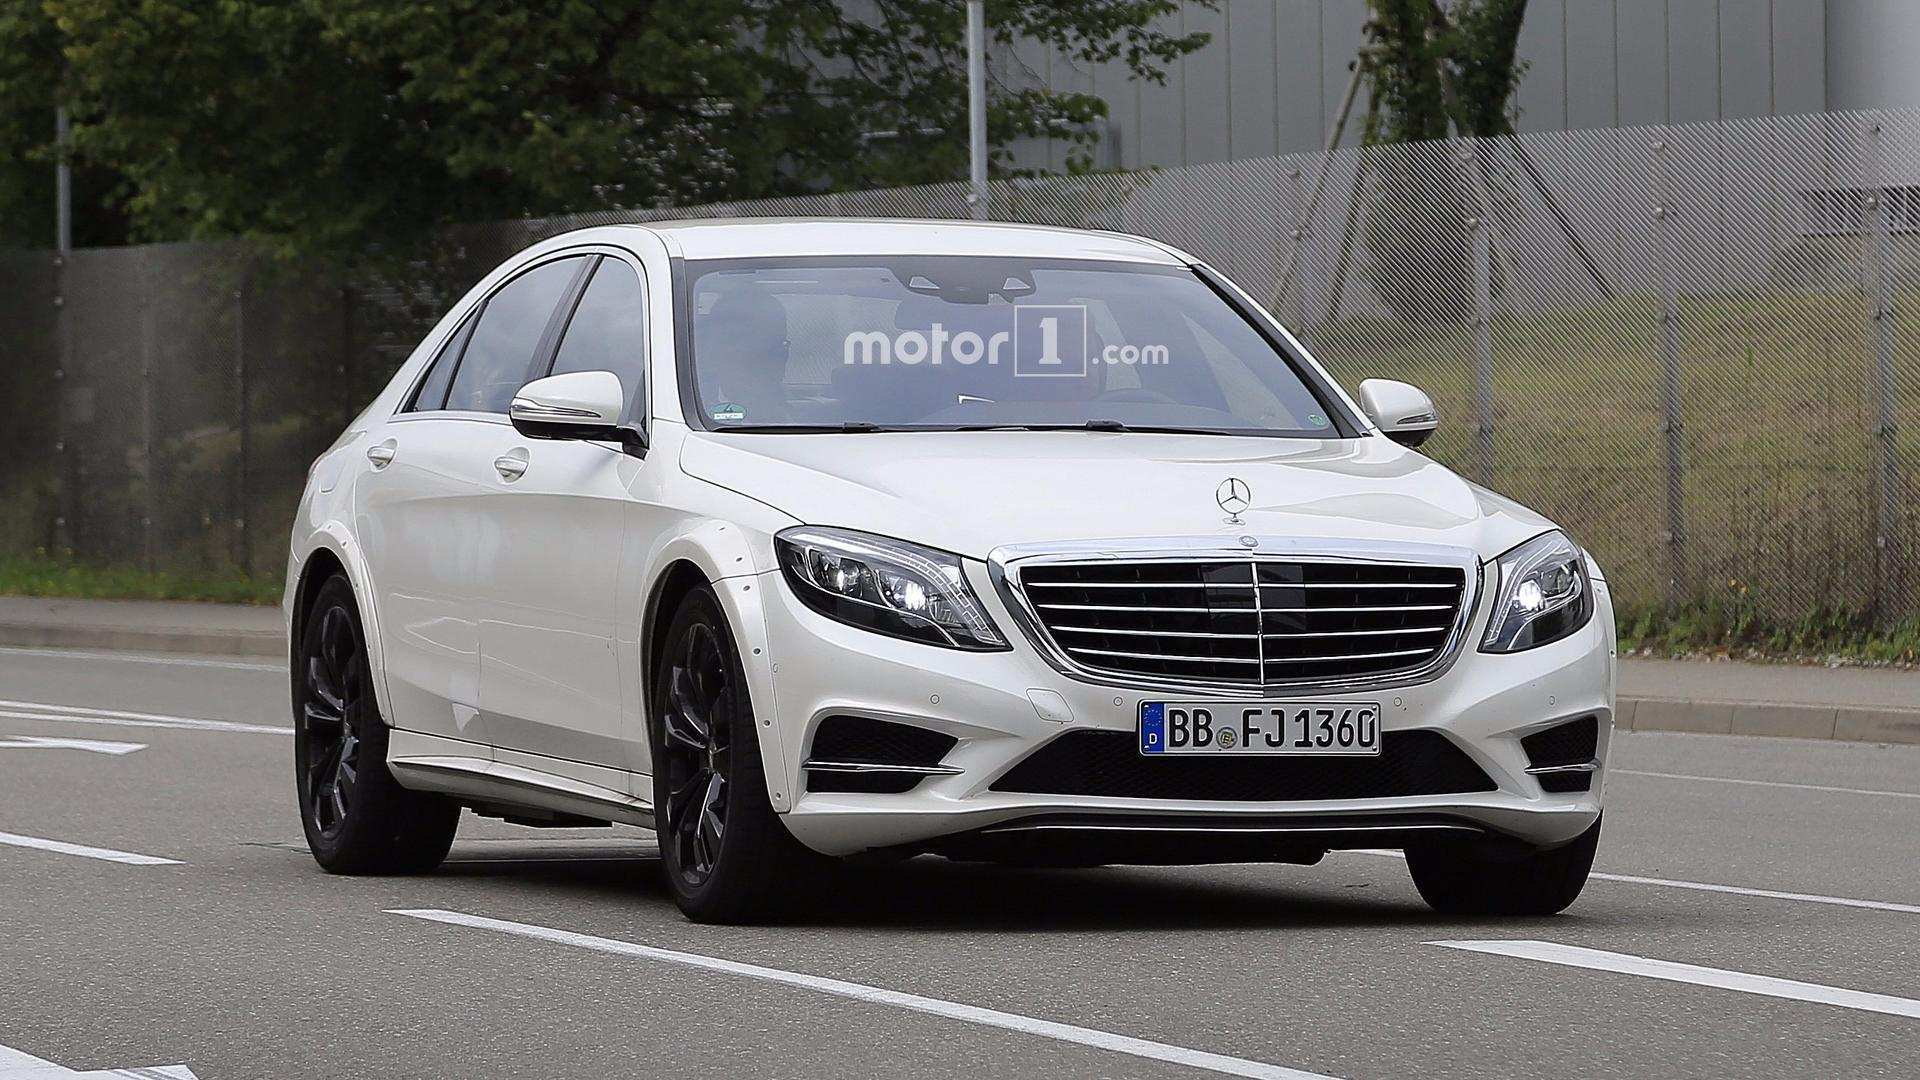 98 All New 2020 Mercedes Benz S Class Redesign and Concept by 2020 Mercedes Benz S Class